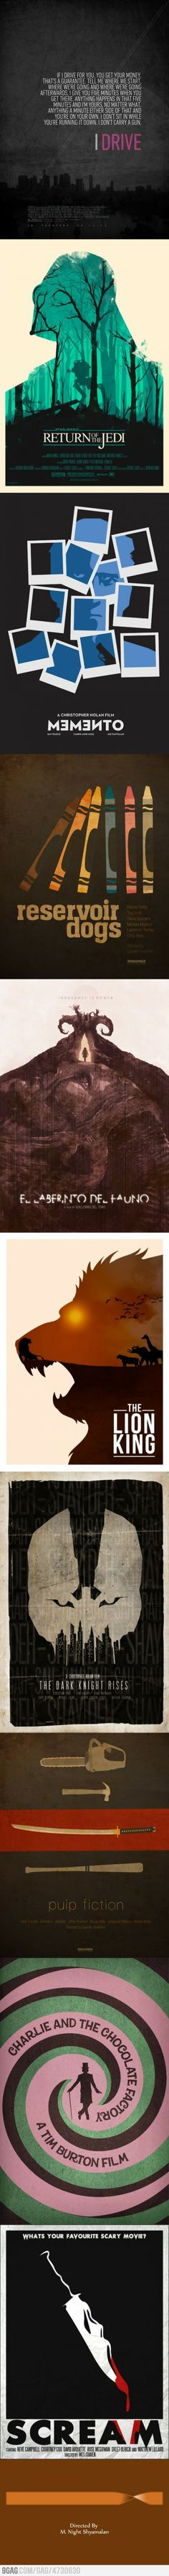 Awesome minimalistic movie posters